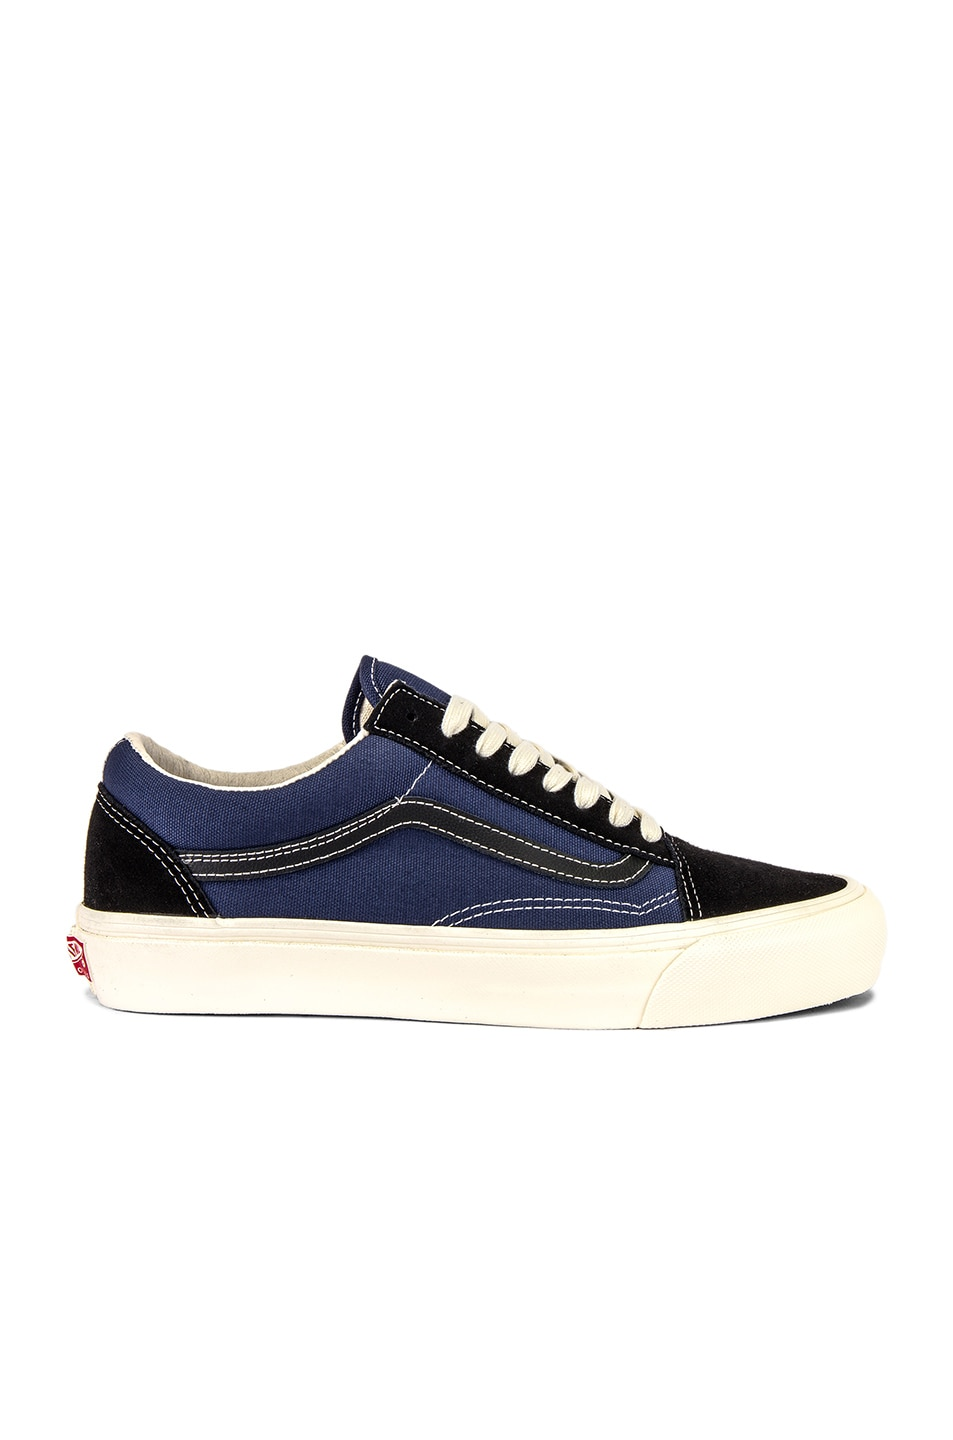 Image 1 of Vans Vault OG Old Skool LX in Black & Insignia Blue